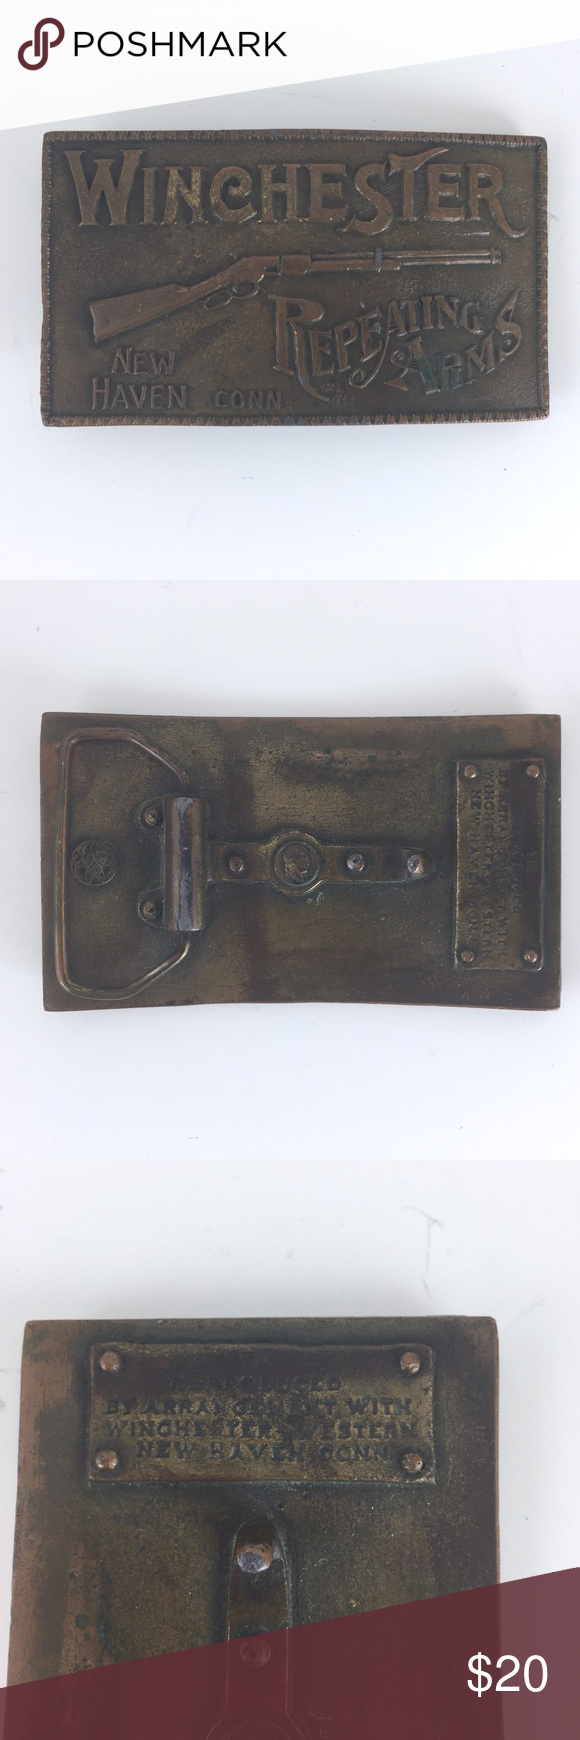 """Vintage Winchester New Haven Arm Rifle Belt Buckle This is a Winchester new heaven repeating arms rifle firearms belt buckle. Good condition. Some minor Wear from previous use. Size : 4"""" x 2.25"""" suitable for 1.75"""" width belt None Accessories Belts"""